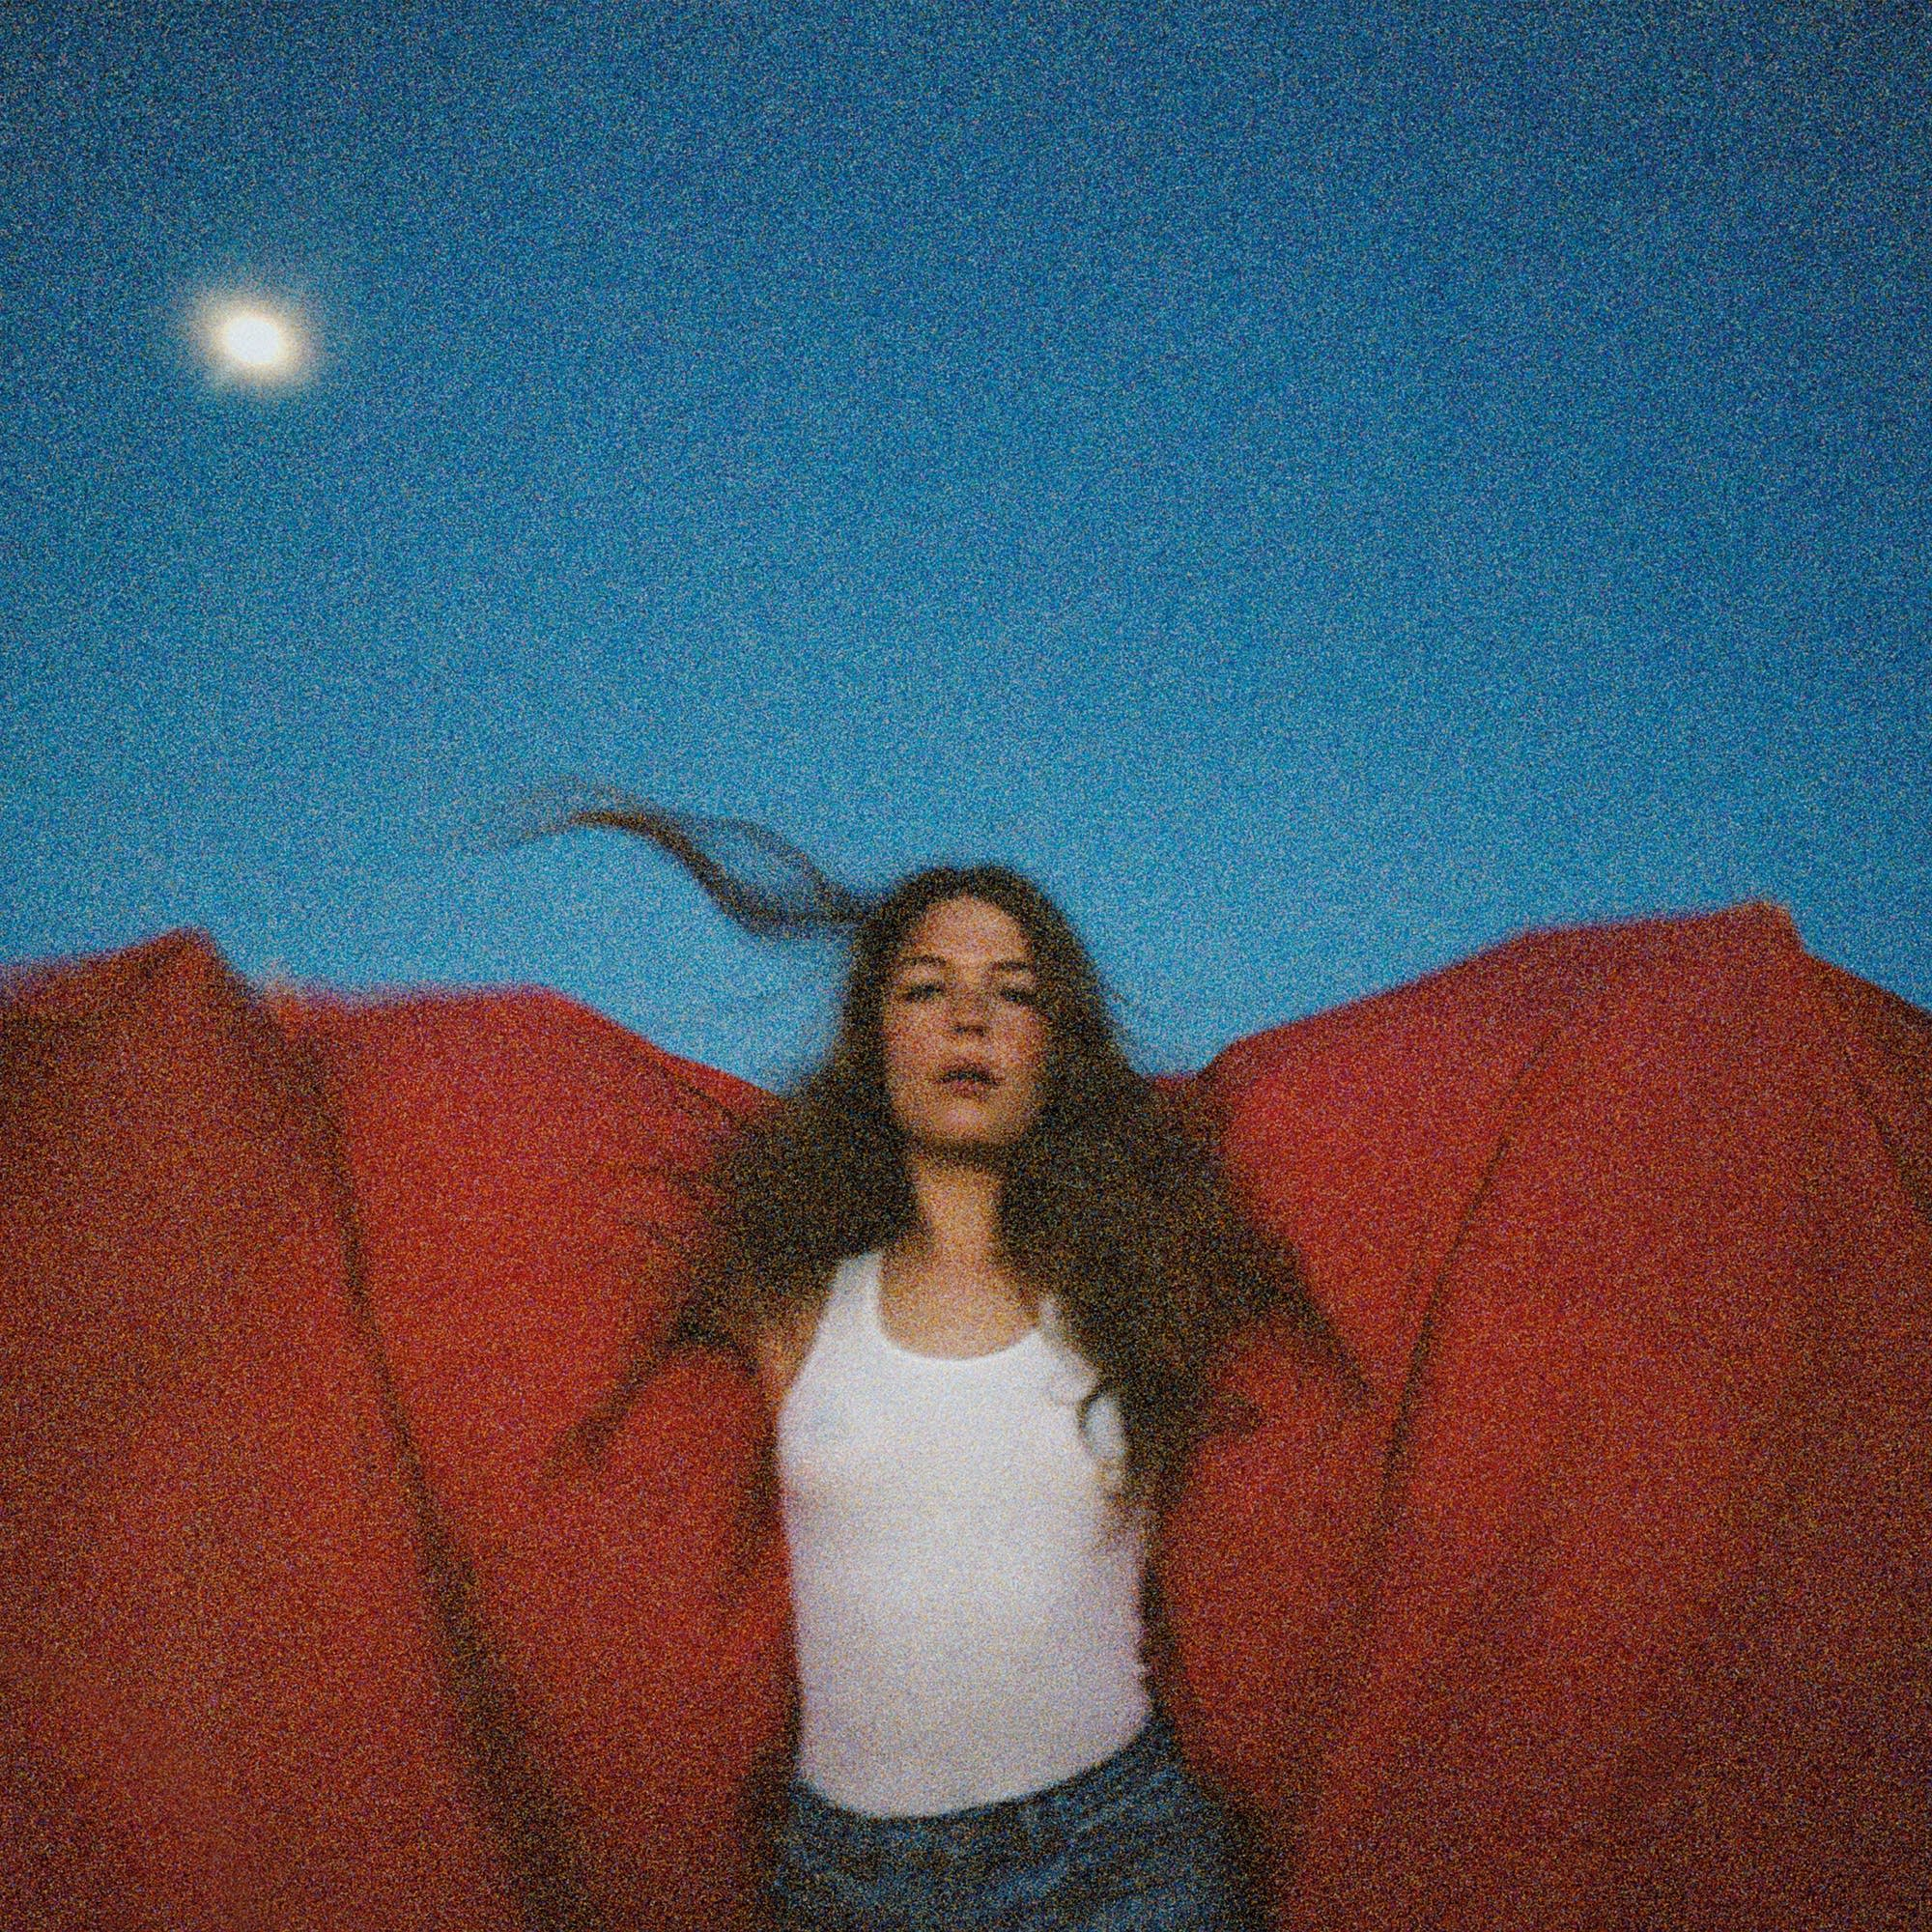 5. On repeat? Maggie Rogers' new album. - The second song on the album, Overnight, takes me back to my senior year of high school every listen.View